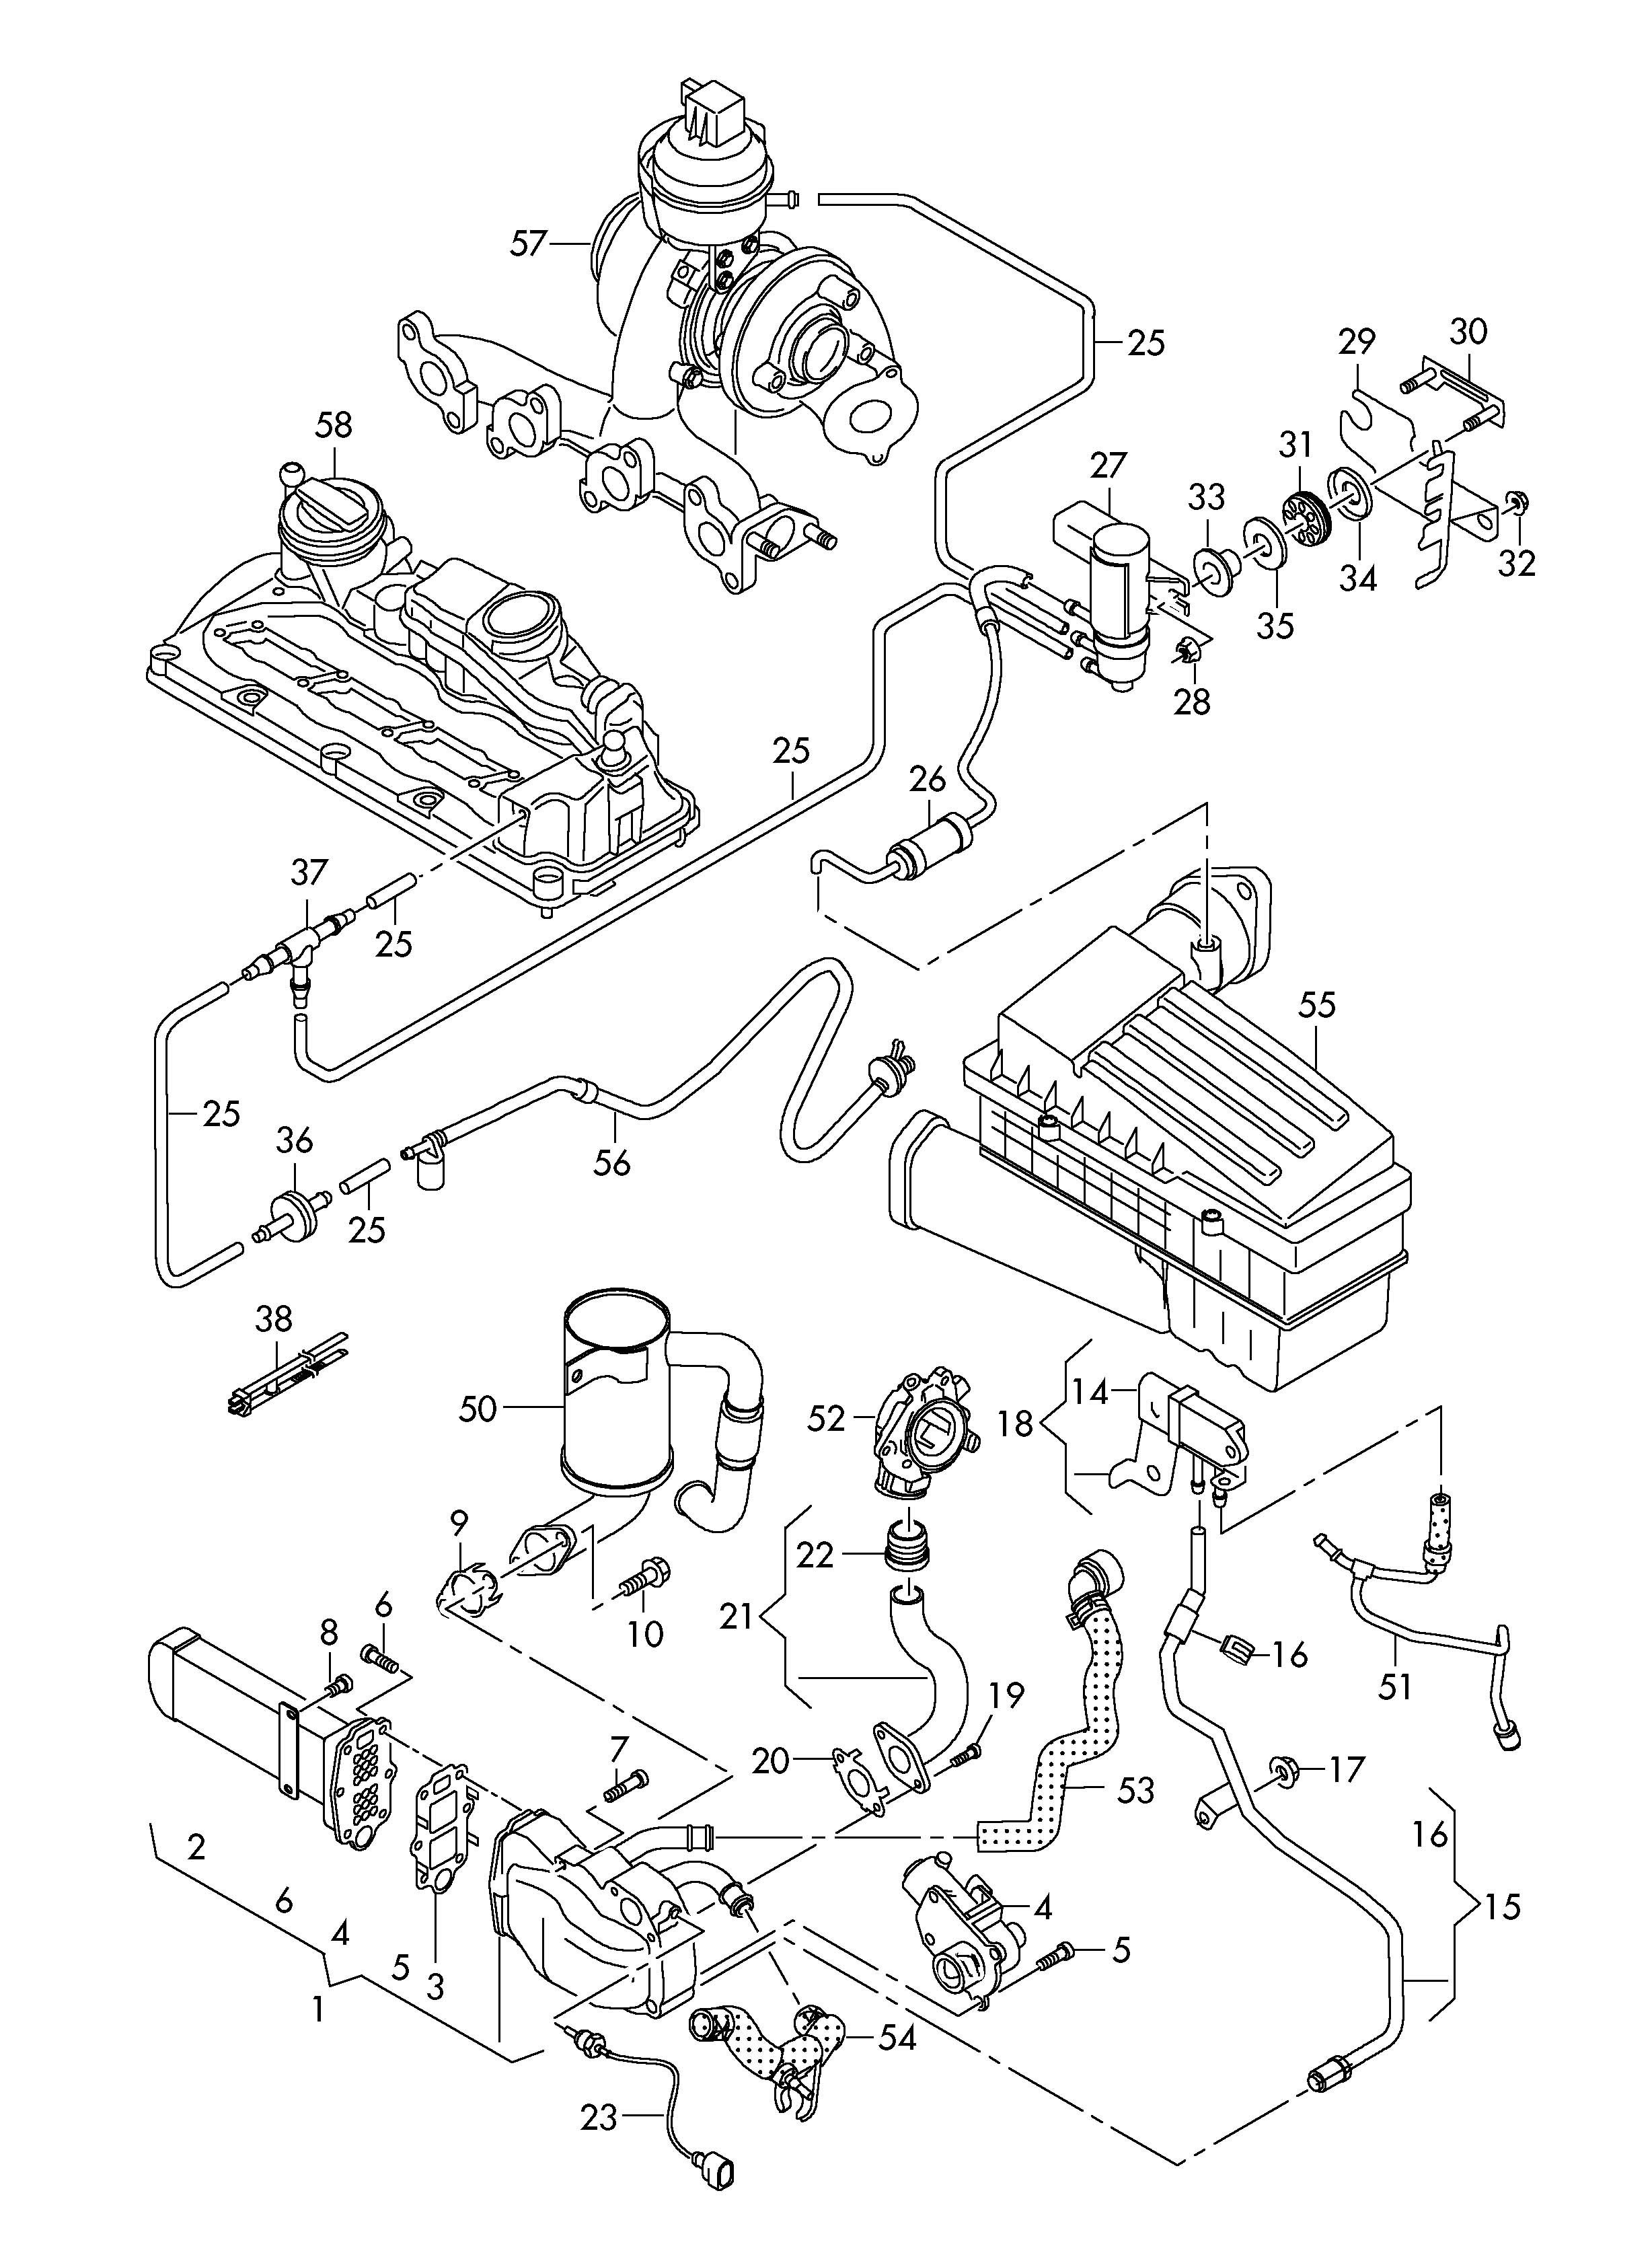 Audi A4 B7 2 0 Engine Diagram. Audi. Auto Wiring Diagram